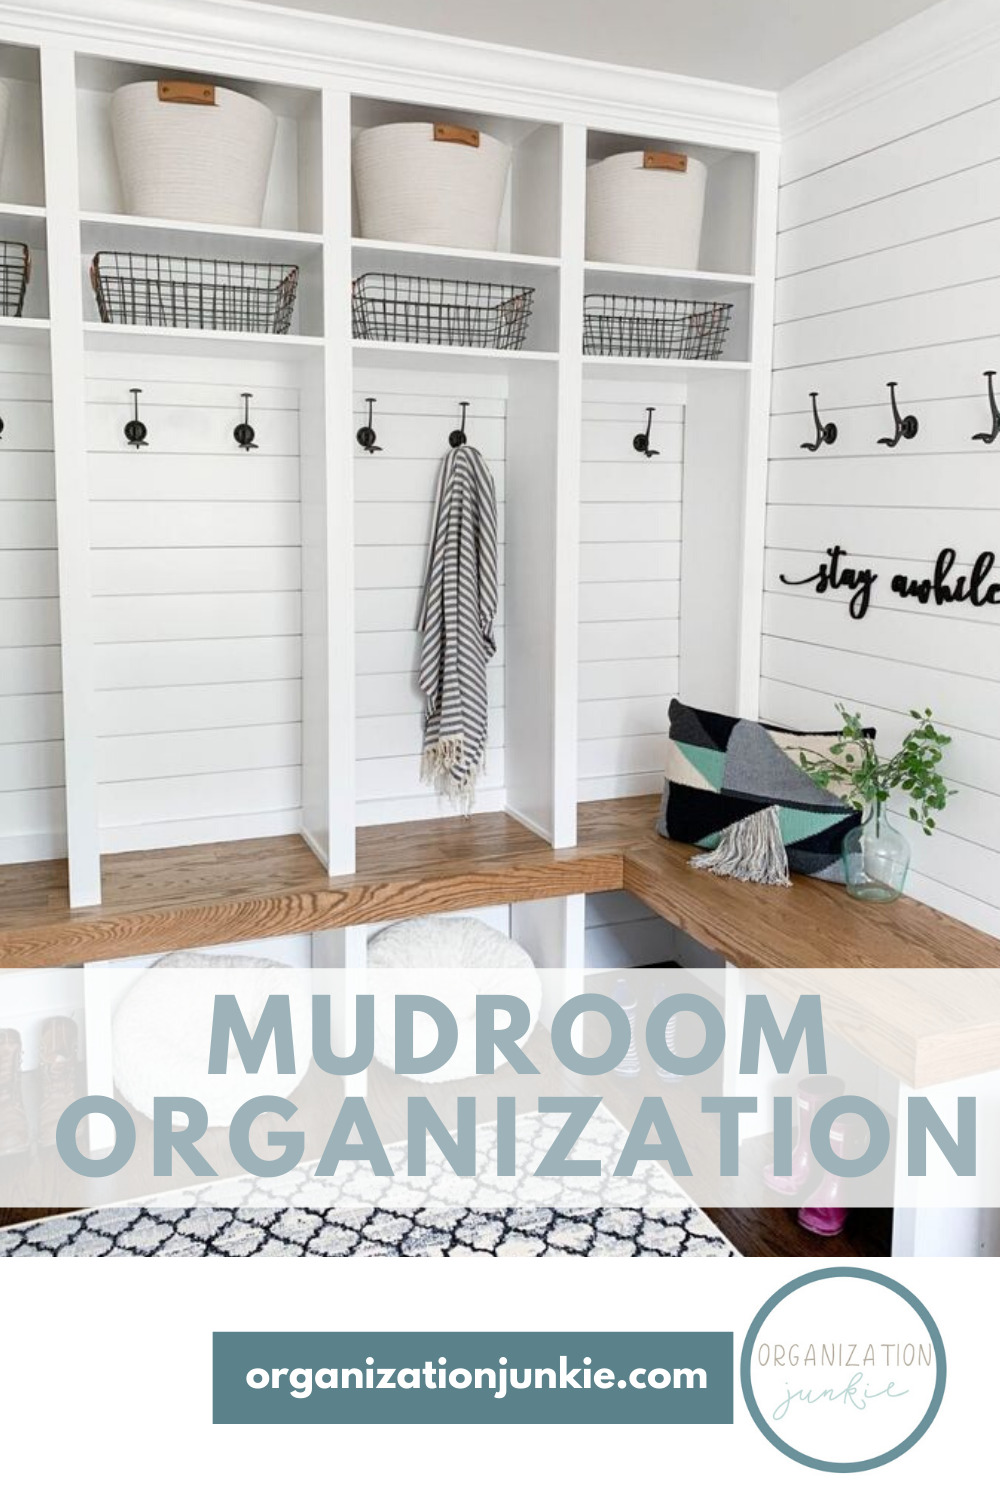 A mud room is great. Everyone can come in and take off their shoes, drop their backpacks and coats and not track junk into the rest of the house. But, if not organized the mud room can become a disaster. Read this post to learn how to get your mud room organized so you love it. #mudroomideas #organizatontips #organizationjunkieblog